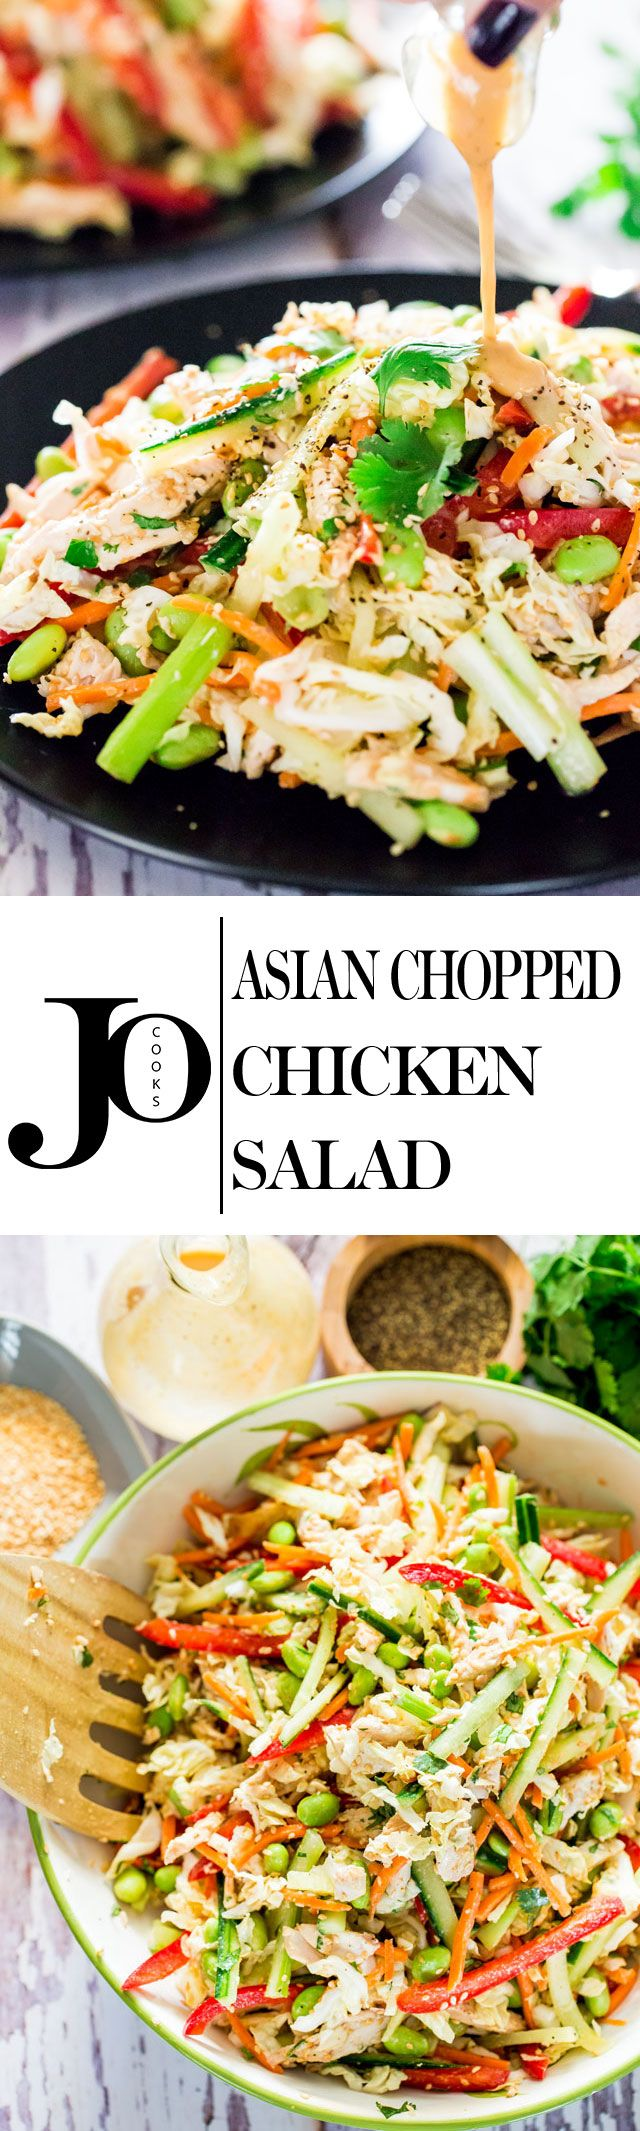 Asian Chopped Chicken Salad - a simple chopped salad with chicken and loaded with veggies and great big flavors from a homemade dressing.